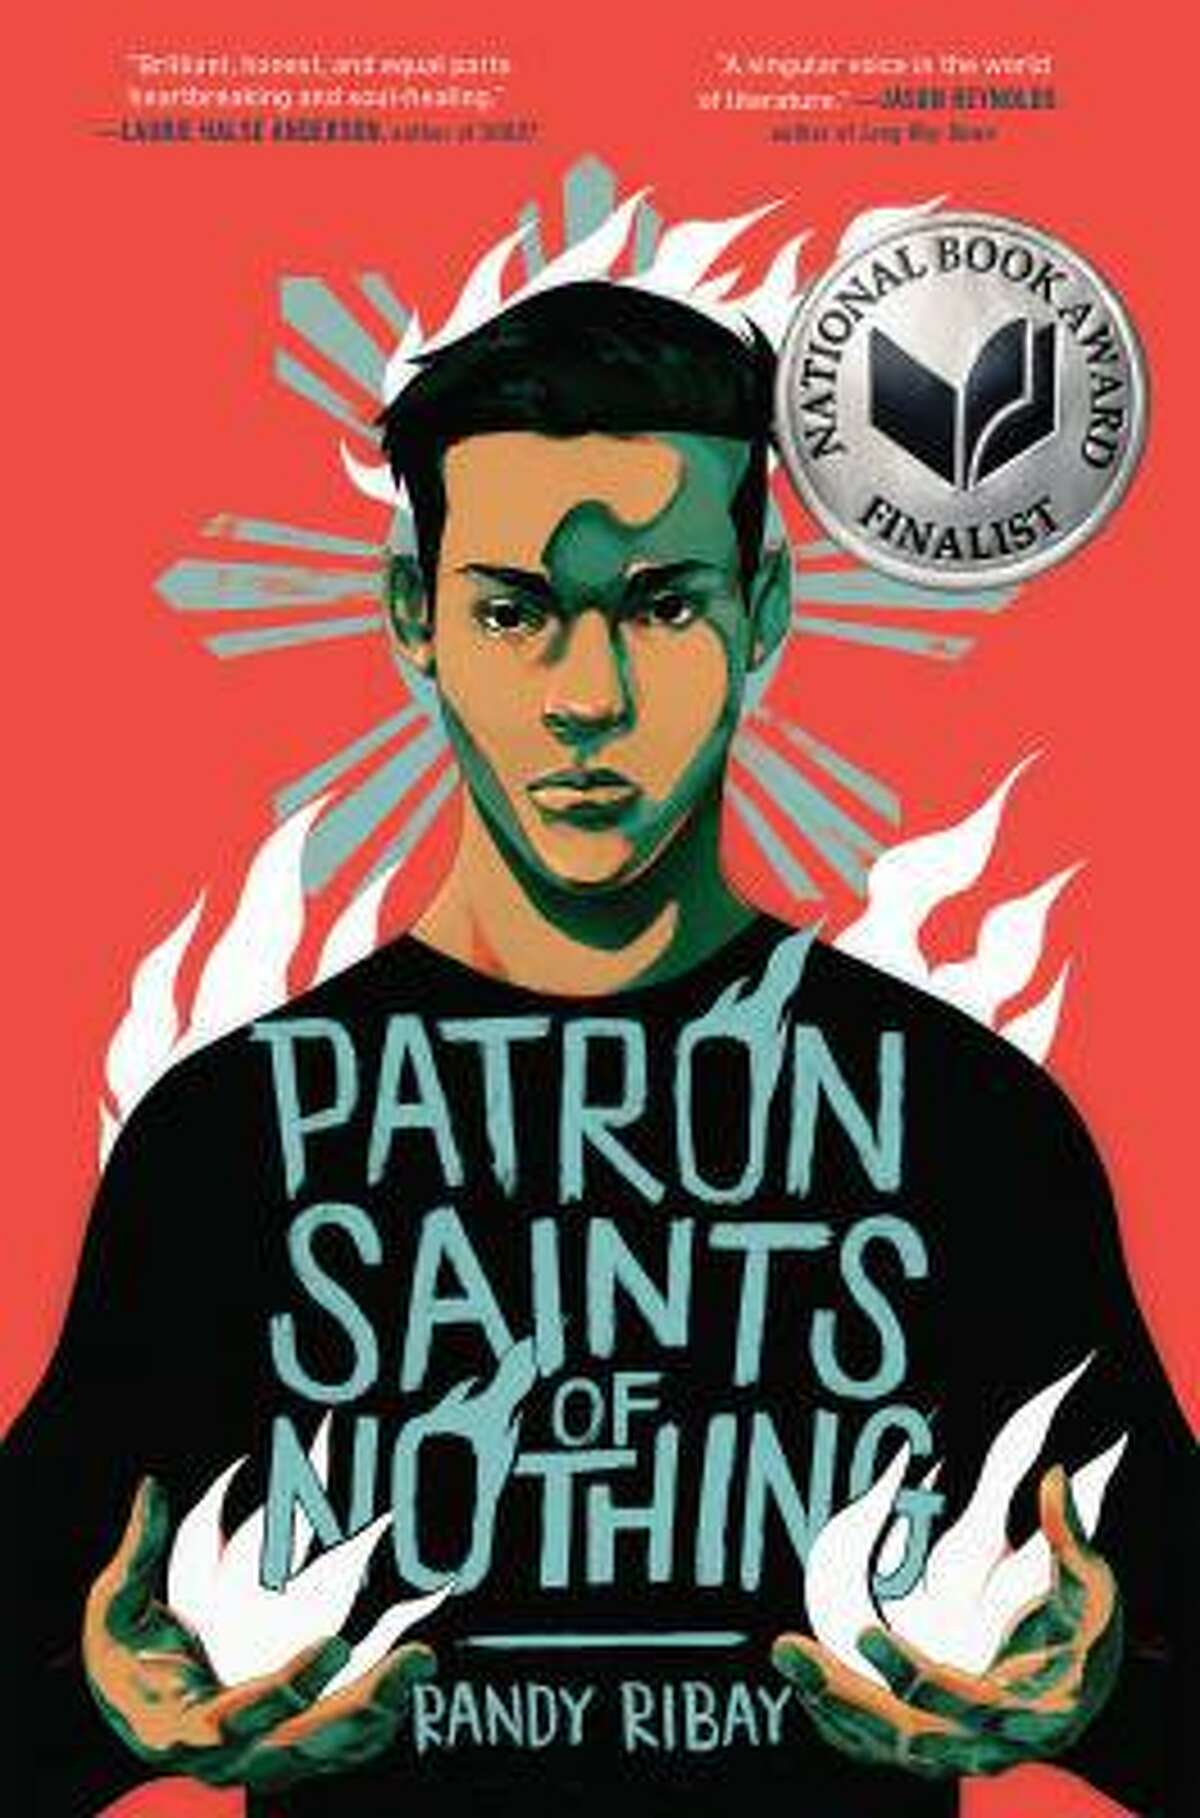 This month, the YA Book Club will discuss 'Patron Saints of Nothing' by Randy Ribay.